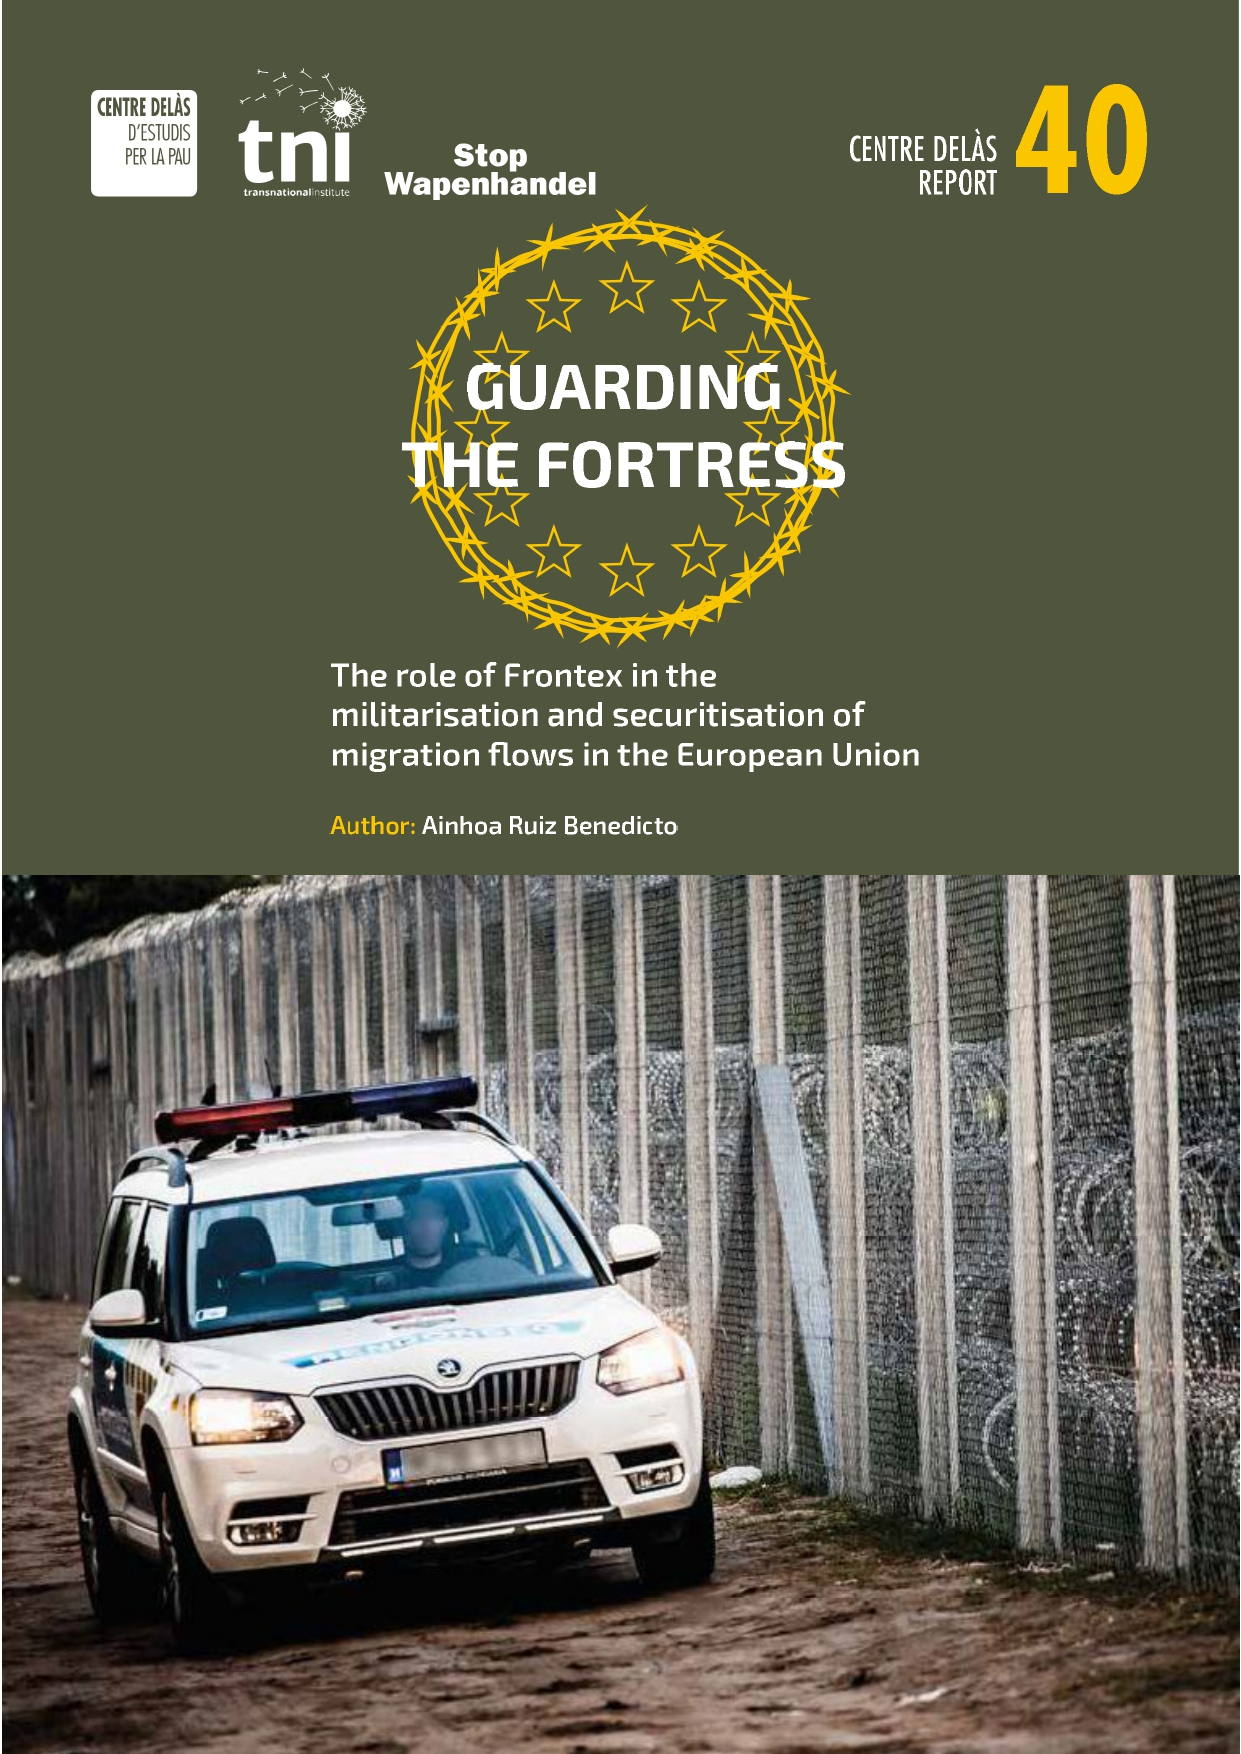 Report 40: Guarding the Fortress. Frontex role in the militarisation and securitisation of migratory flows in the European Union